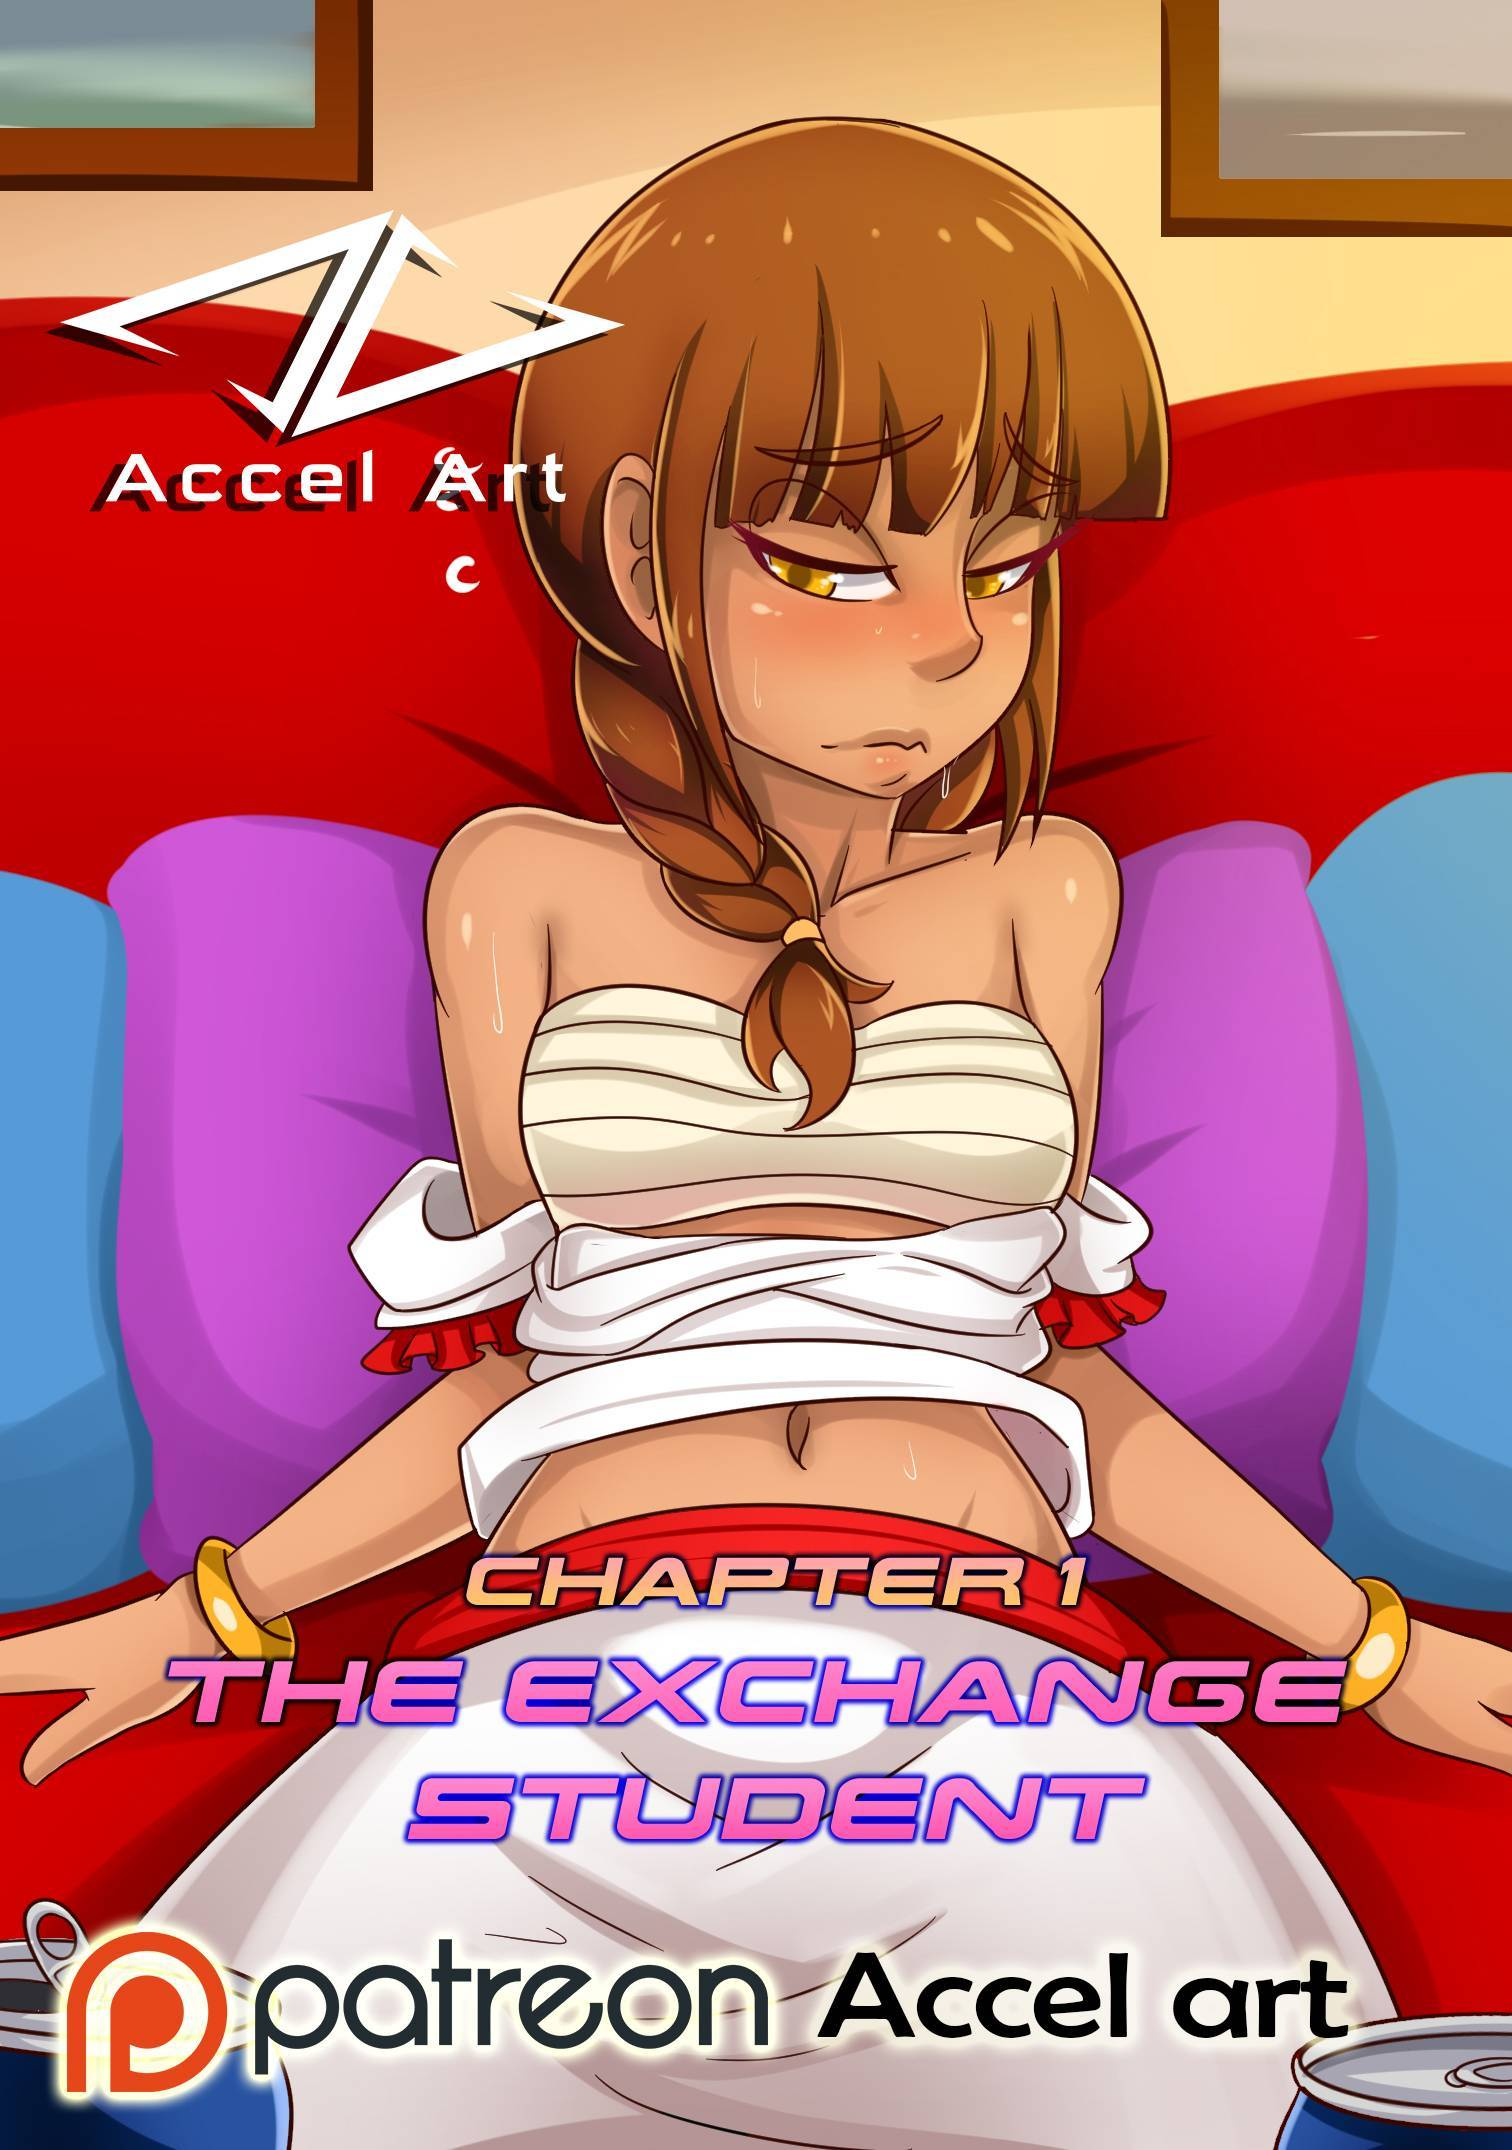 2 - Axi stories. Chapter. Part 1: The exchange student.